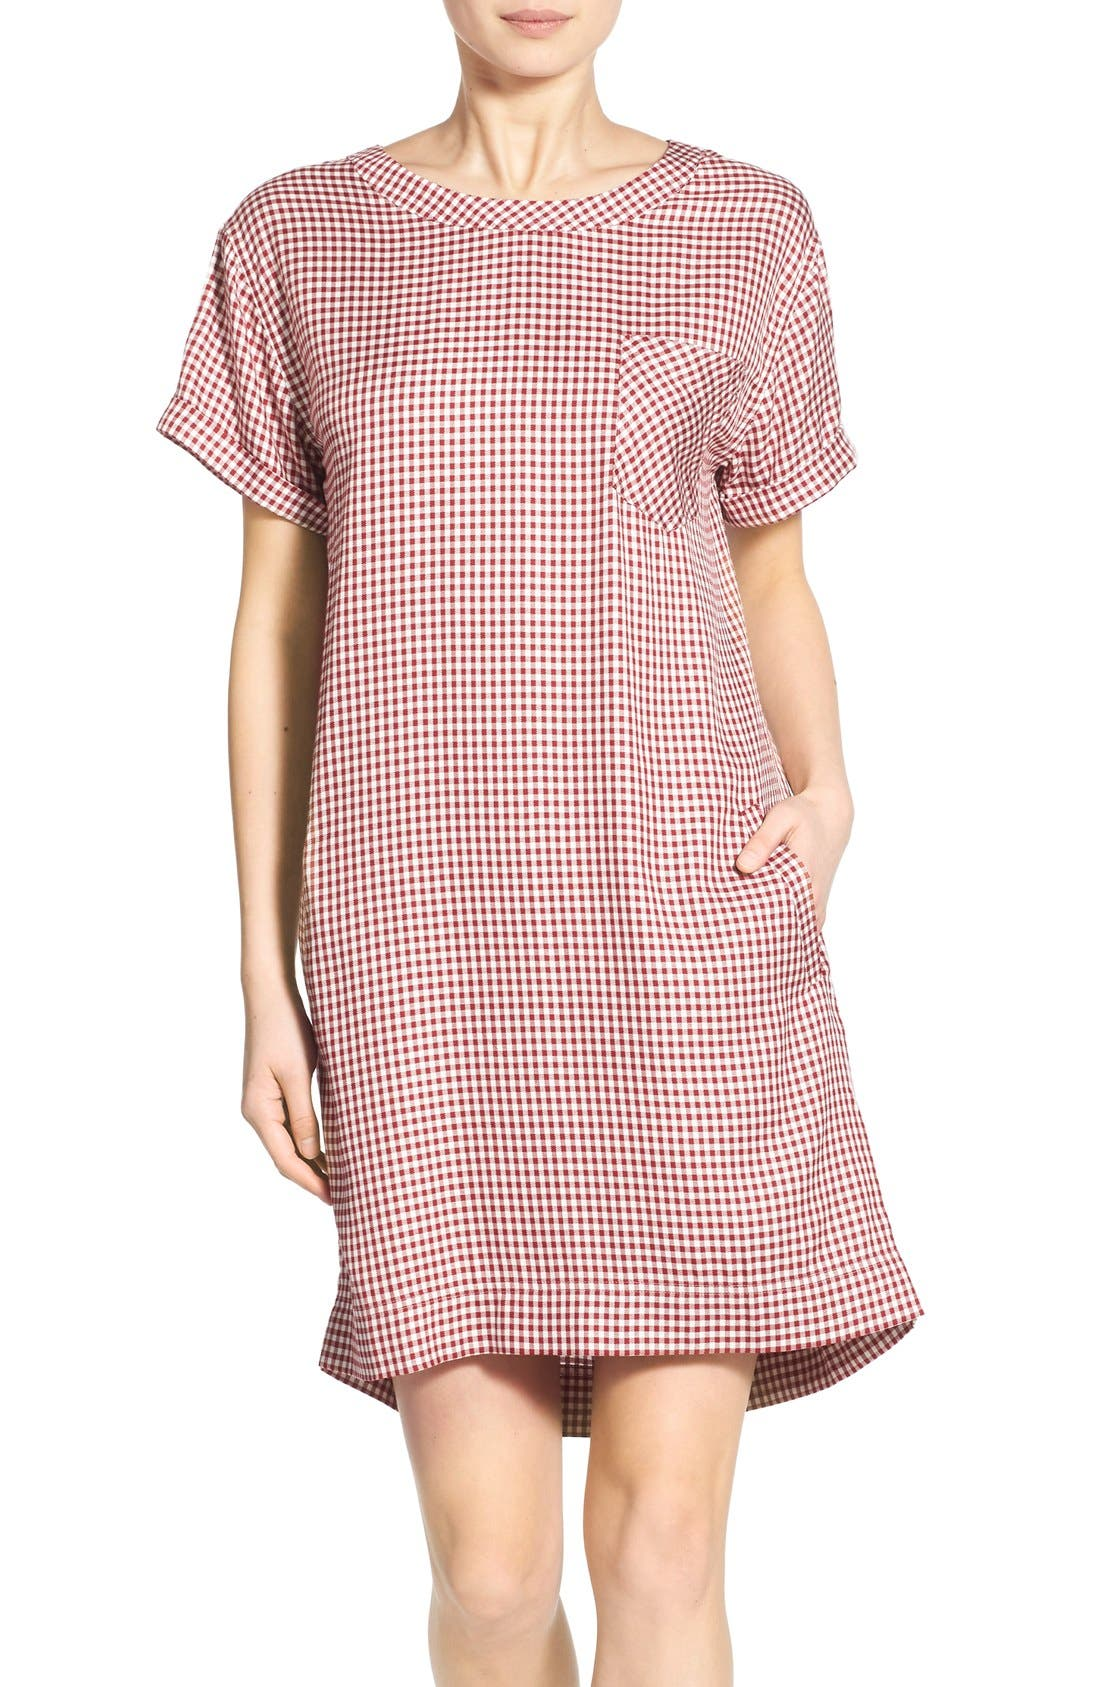 Main Image - Madewell 'Filmscore' Gingham Check Shirt-Sleeve Dress